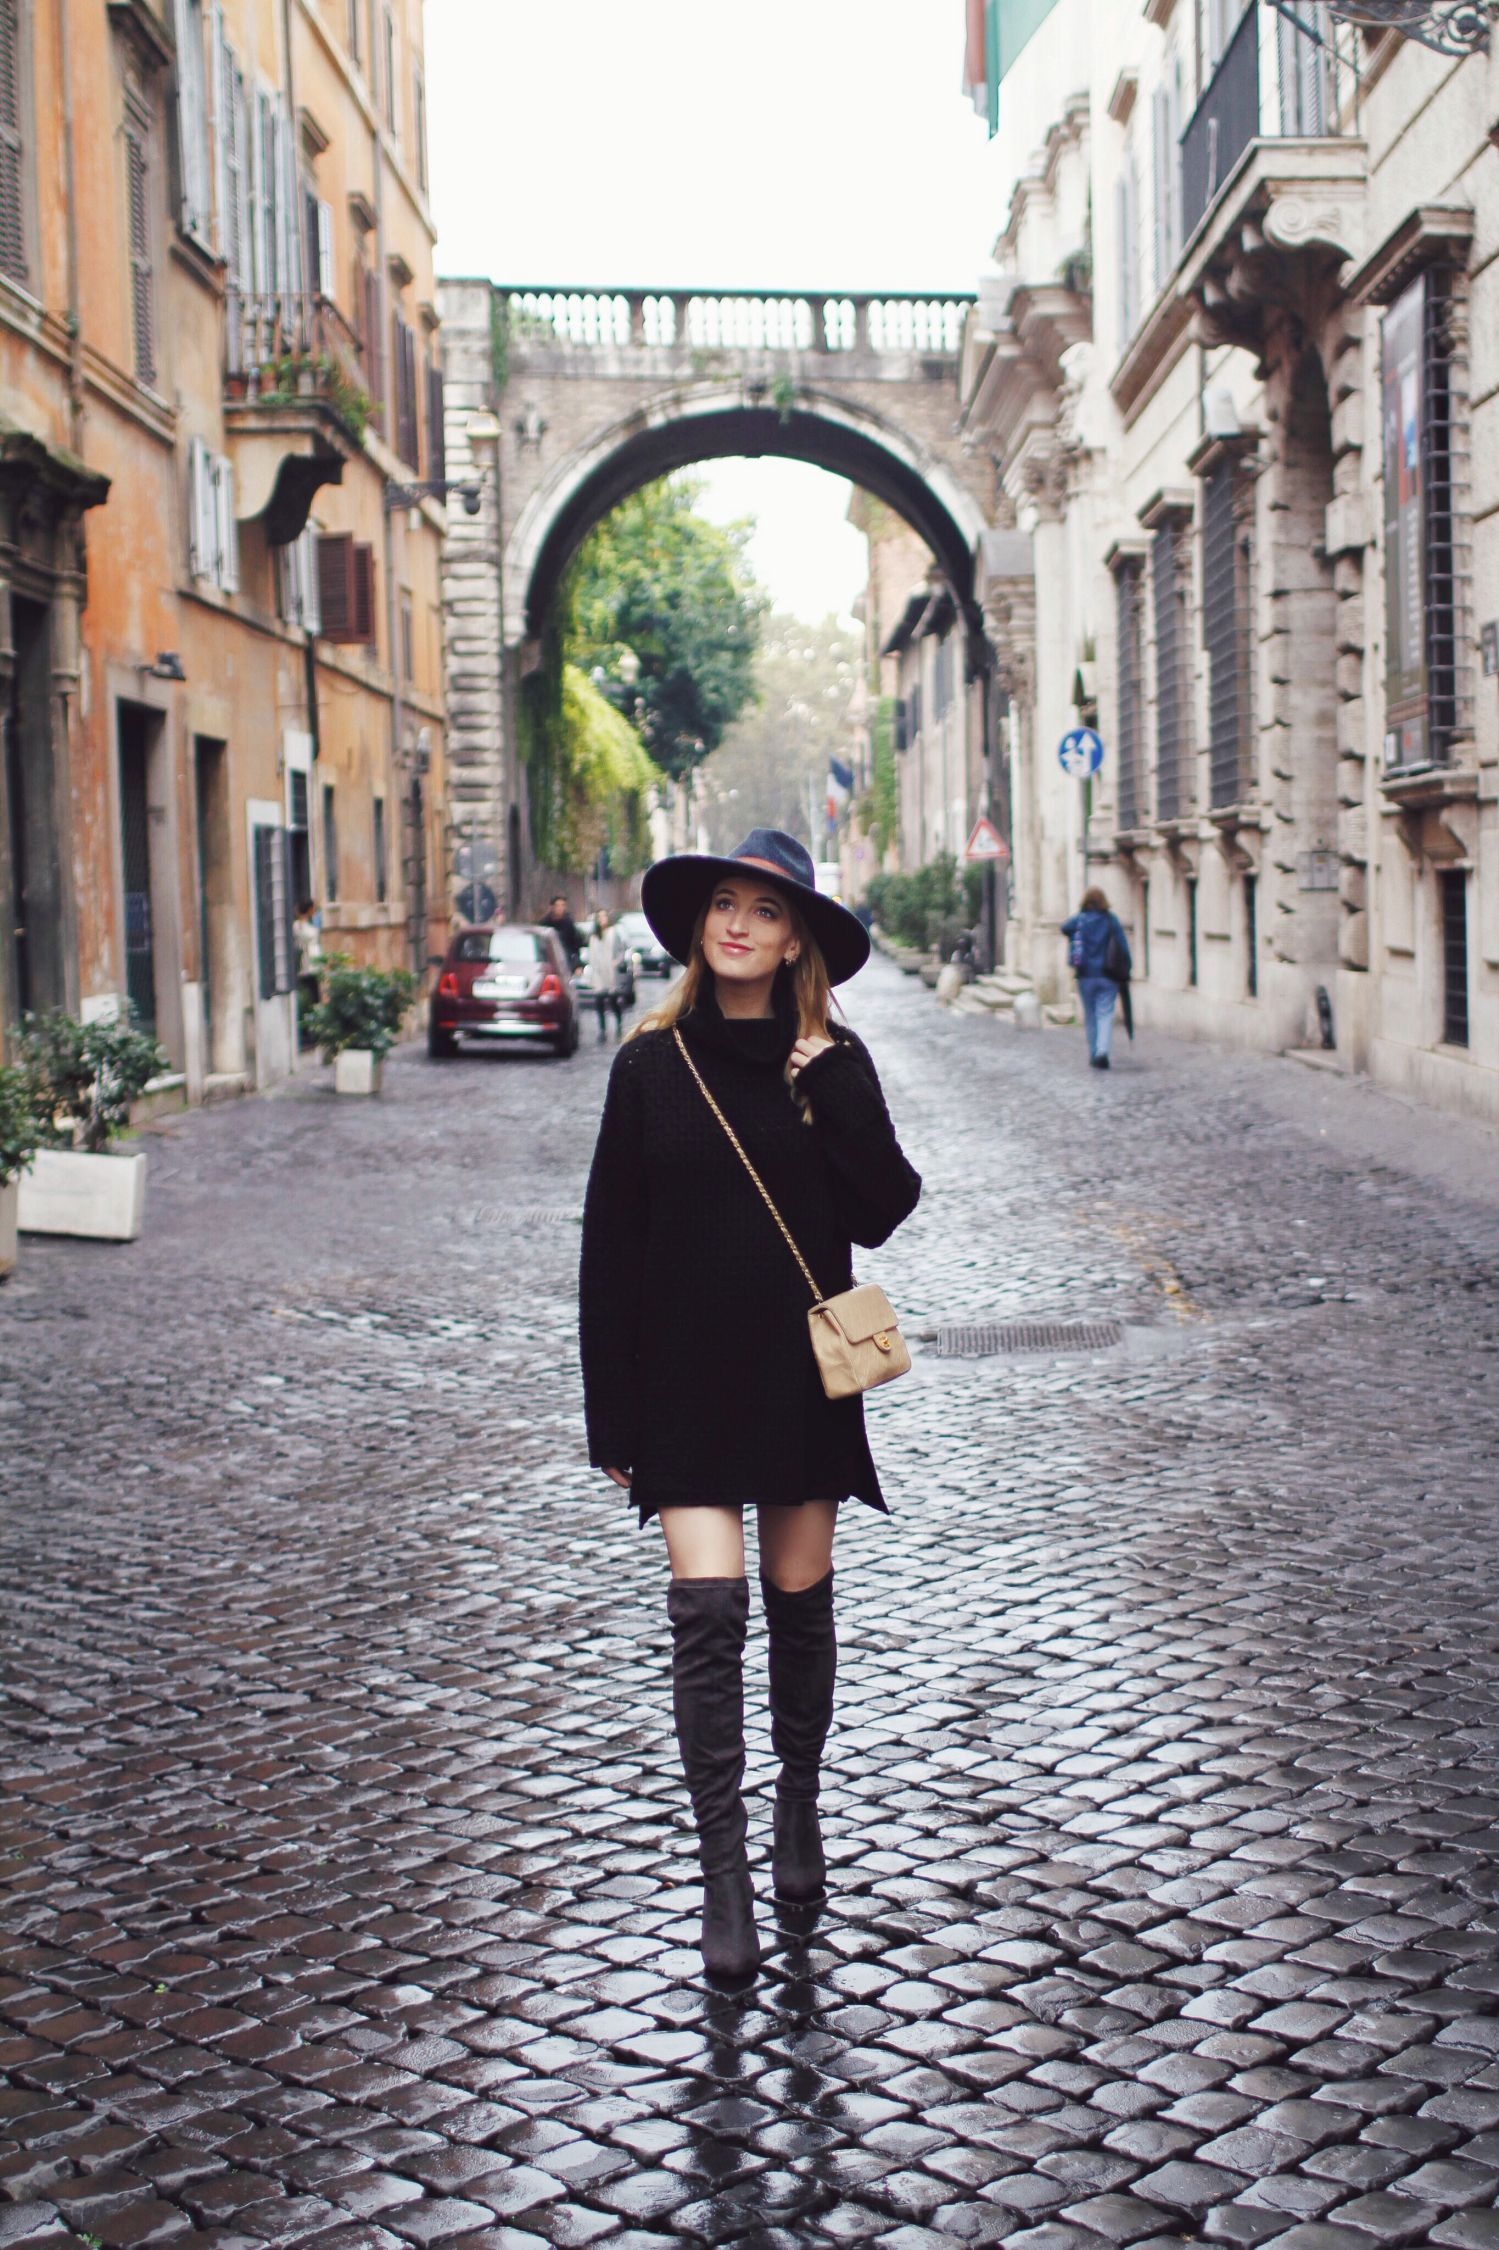 Fashion Blogger Overknee Boots Rome Street Style Queen Of Jet Lags Clothes Pinterest